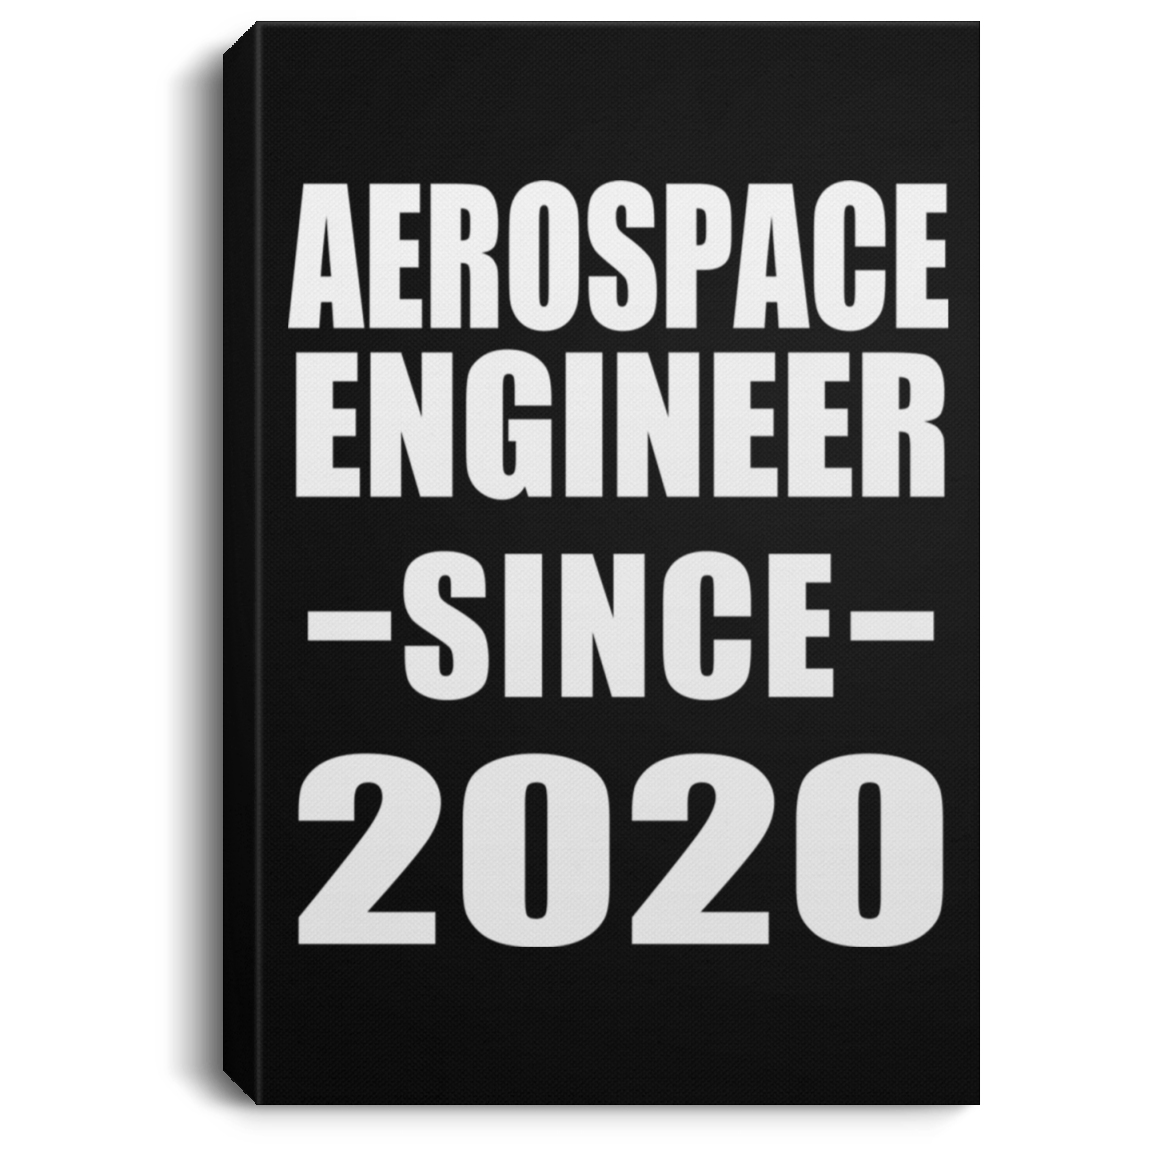 Aerospace Engineer Since 2020 - Canvas Portrait